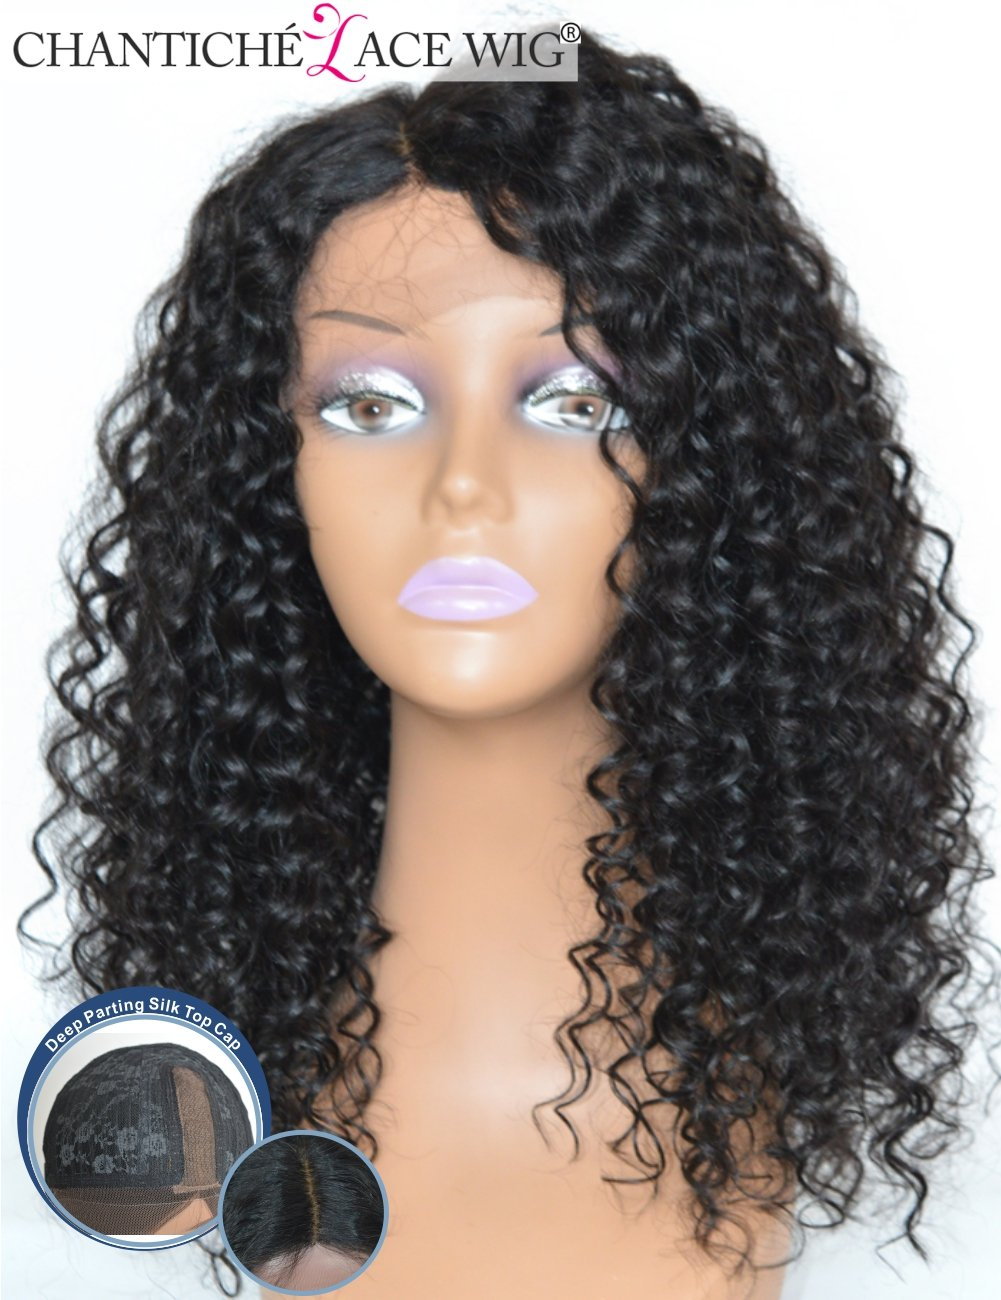 Chantiche Natural Looking Short Curly Silk Base Lace Front Wigs 150% Density 3.75'' Silk Top Invisible Right Deep Parting Brazilian Remy Human Hair Full Wig for African American Women 20 Inch #1B